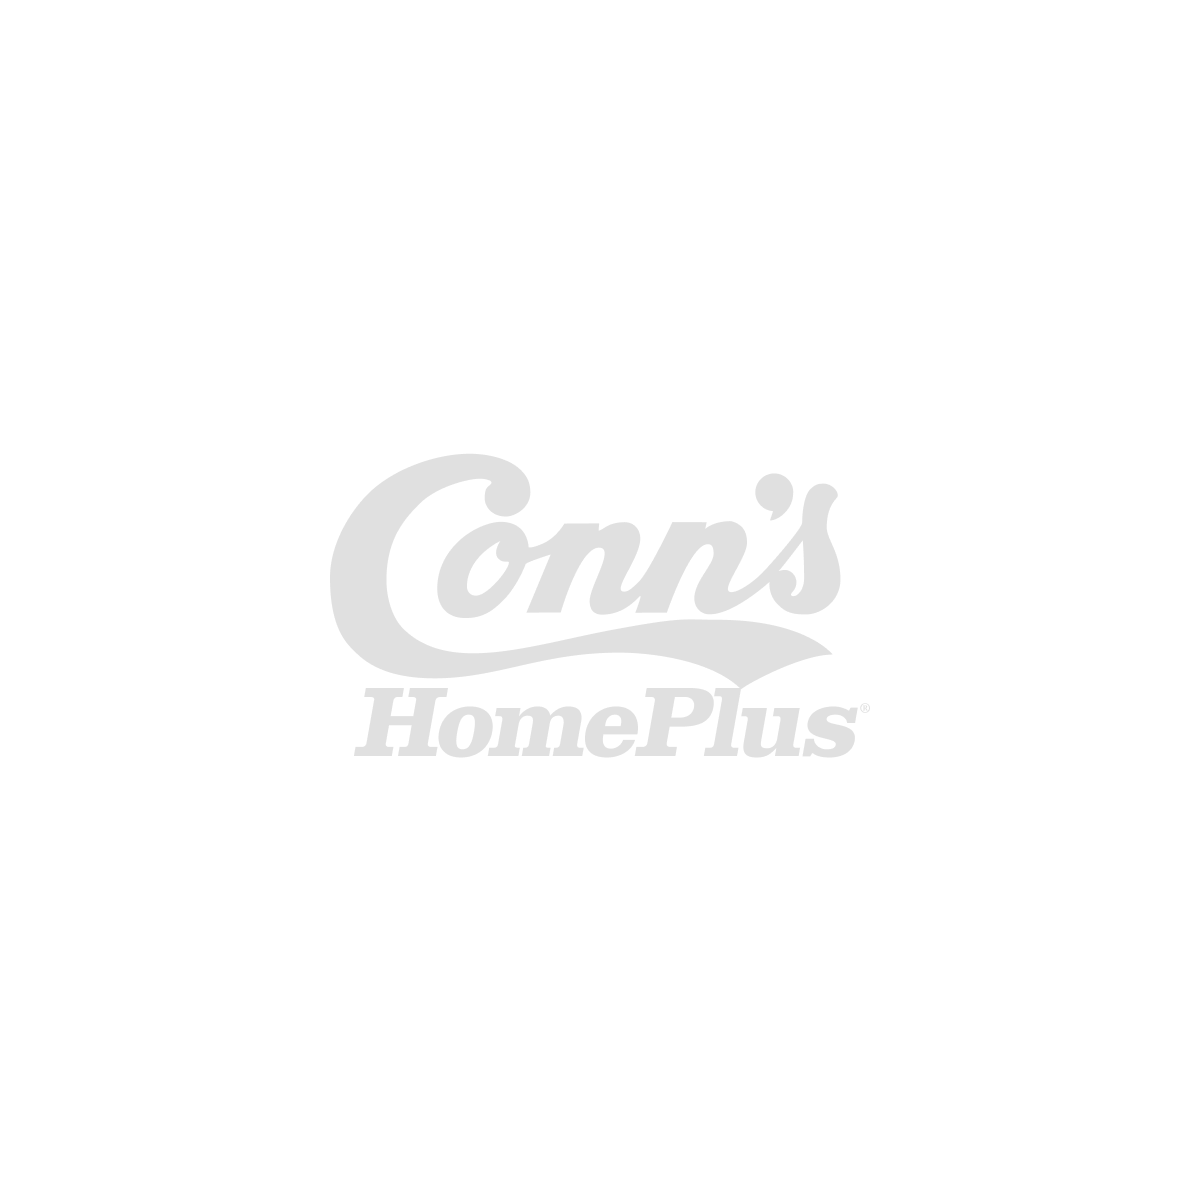 Samsung Linear Wash 39dBA Dishwasher (DW80R9950UT)